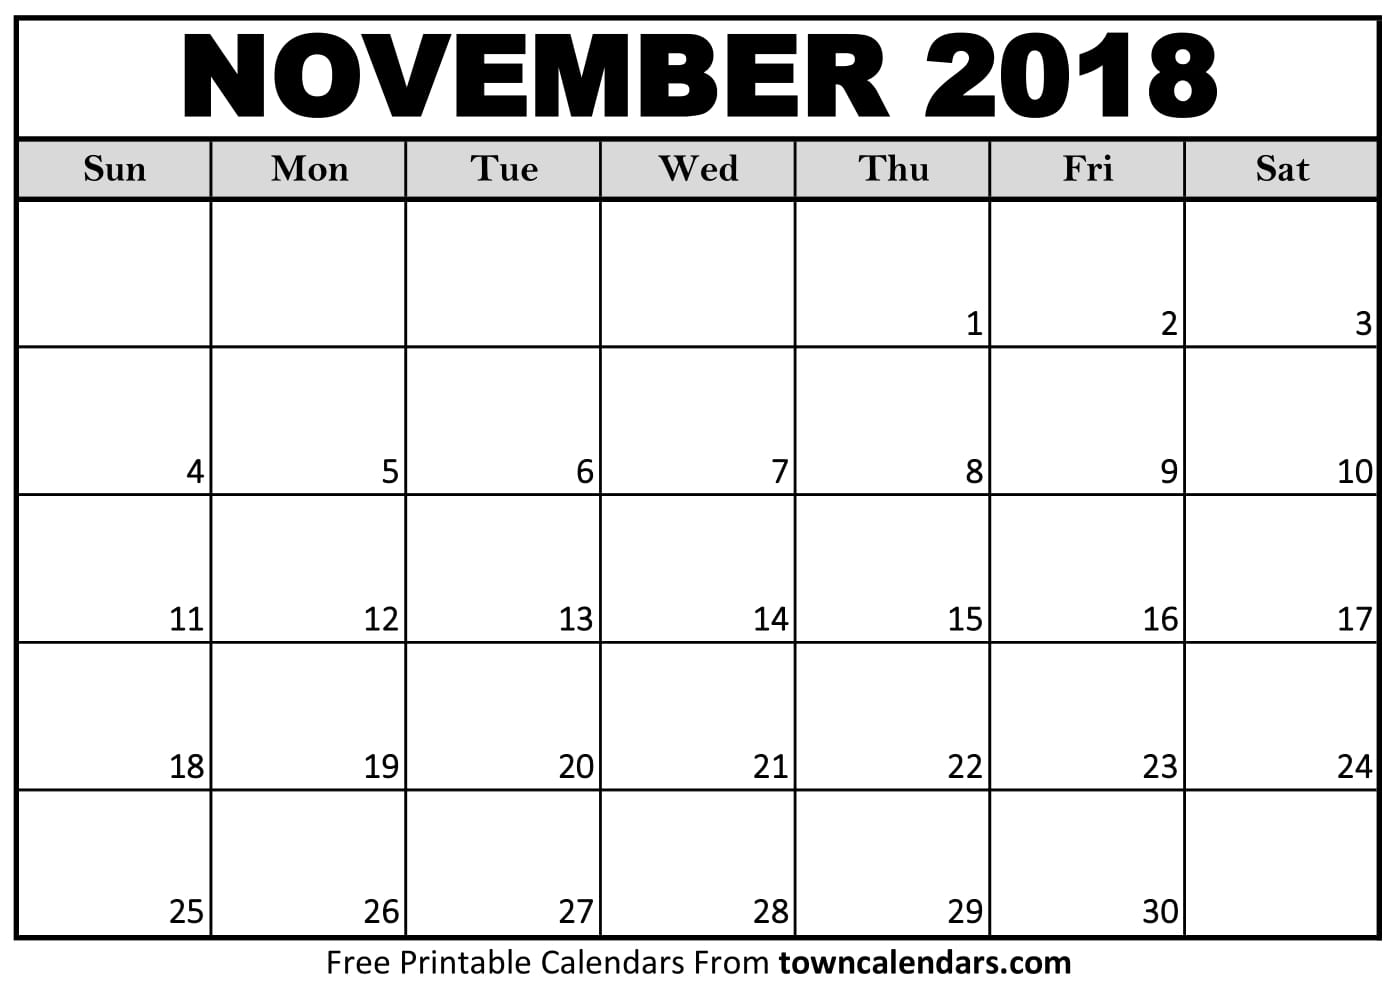 photograph relating to Free Printable Calendar November called Printable November 2018 Calendar -